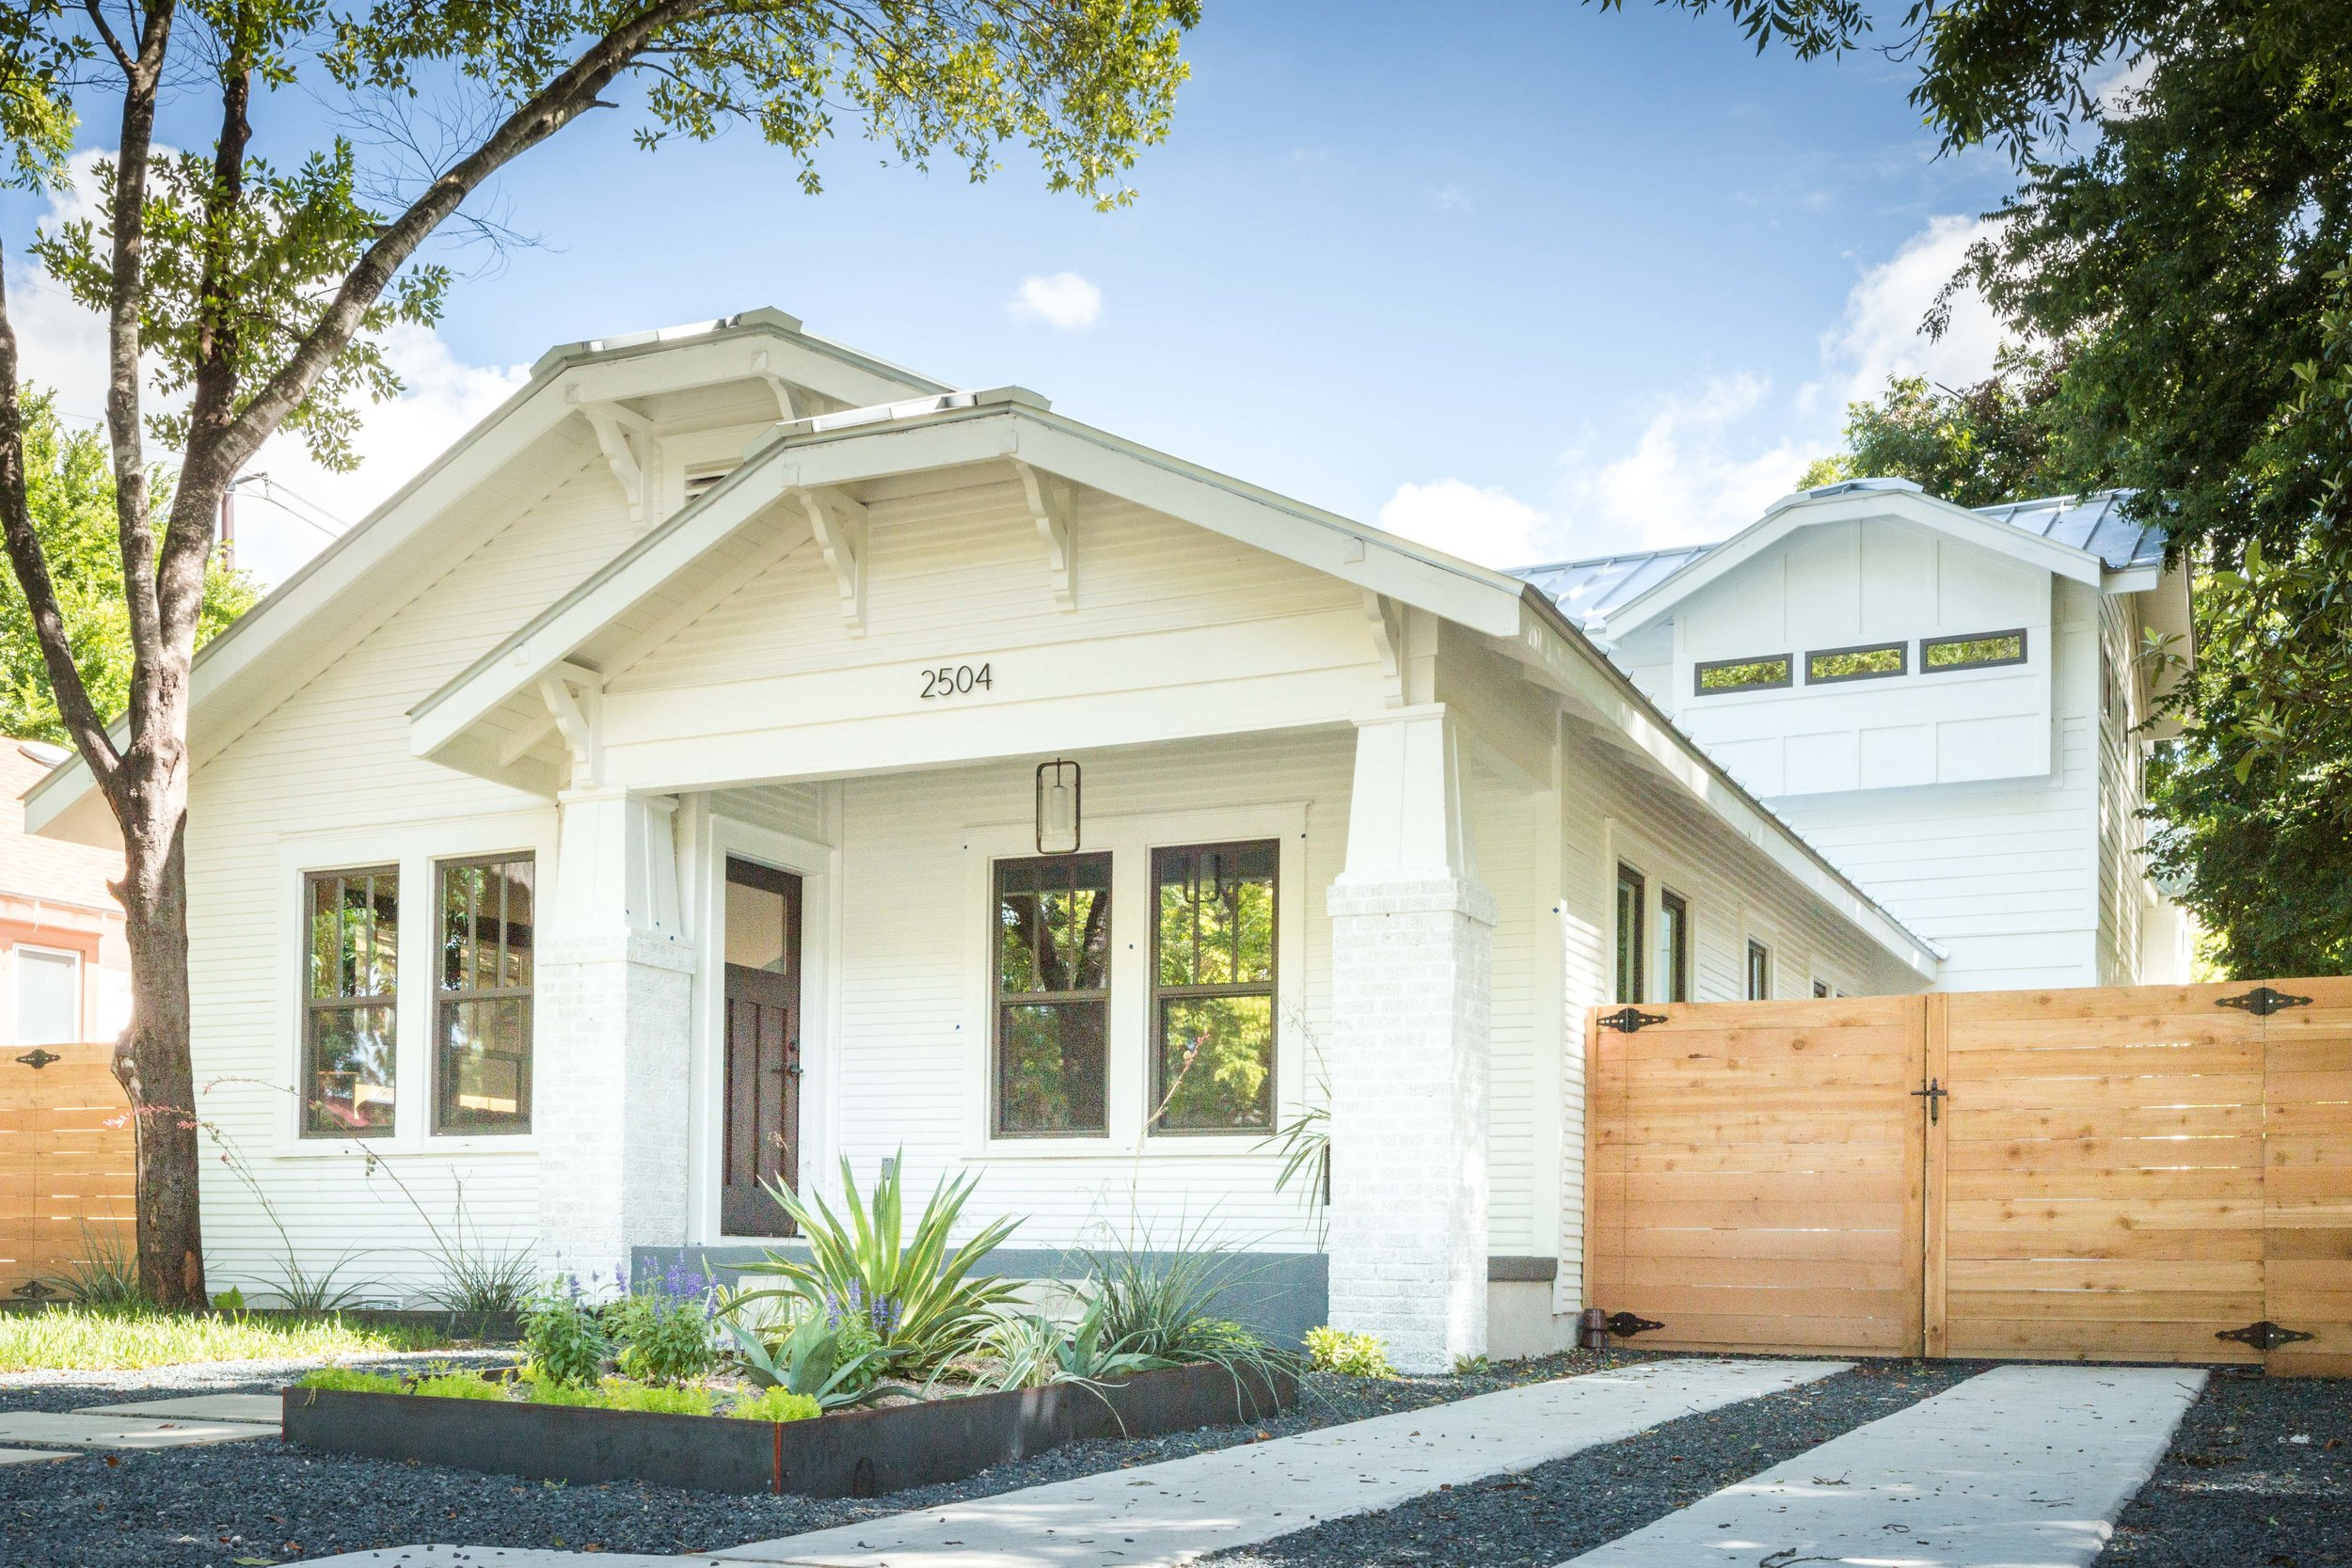 2504_WillowA_-_East_Austin_Bungalow_with_Modern_Addition_-_Holly_neighborhood-0004[2].jpg